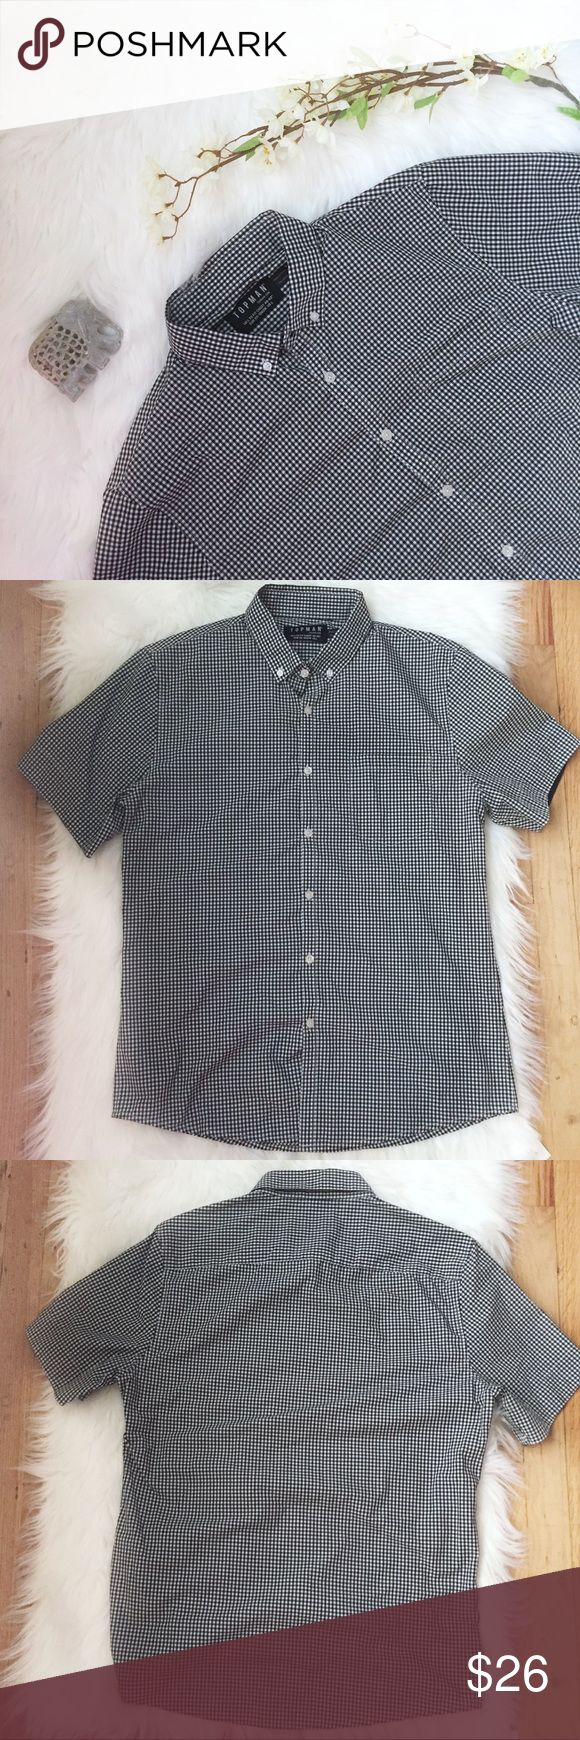 Topman Gingham Plaid Short Sleeve Button Up Shirt Preowned Topman Short sleeve button down front gingham / plaid print Can roll up the sleeves Color: Black and White Gently used condition with no stains or holes Size: Large See pictures for fabric content and approximately measurements while flat, unstretched  Feel free to make an offer or bundle & save! Topman Shirts Casual Button Down Shirts